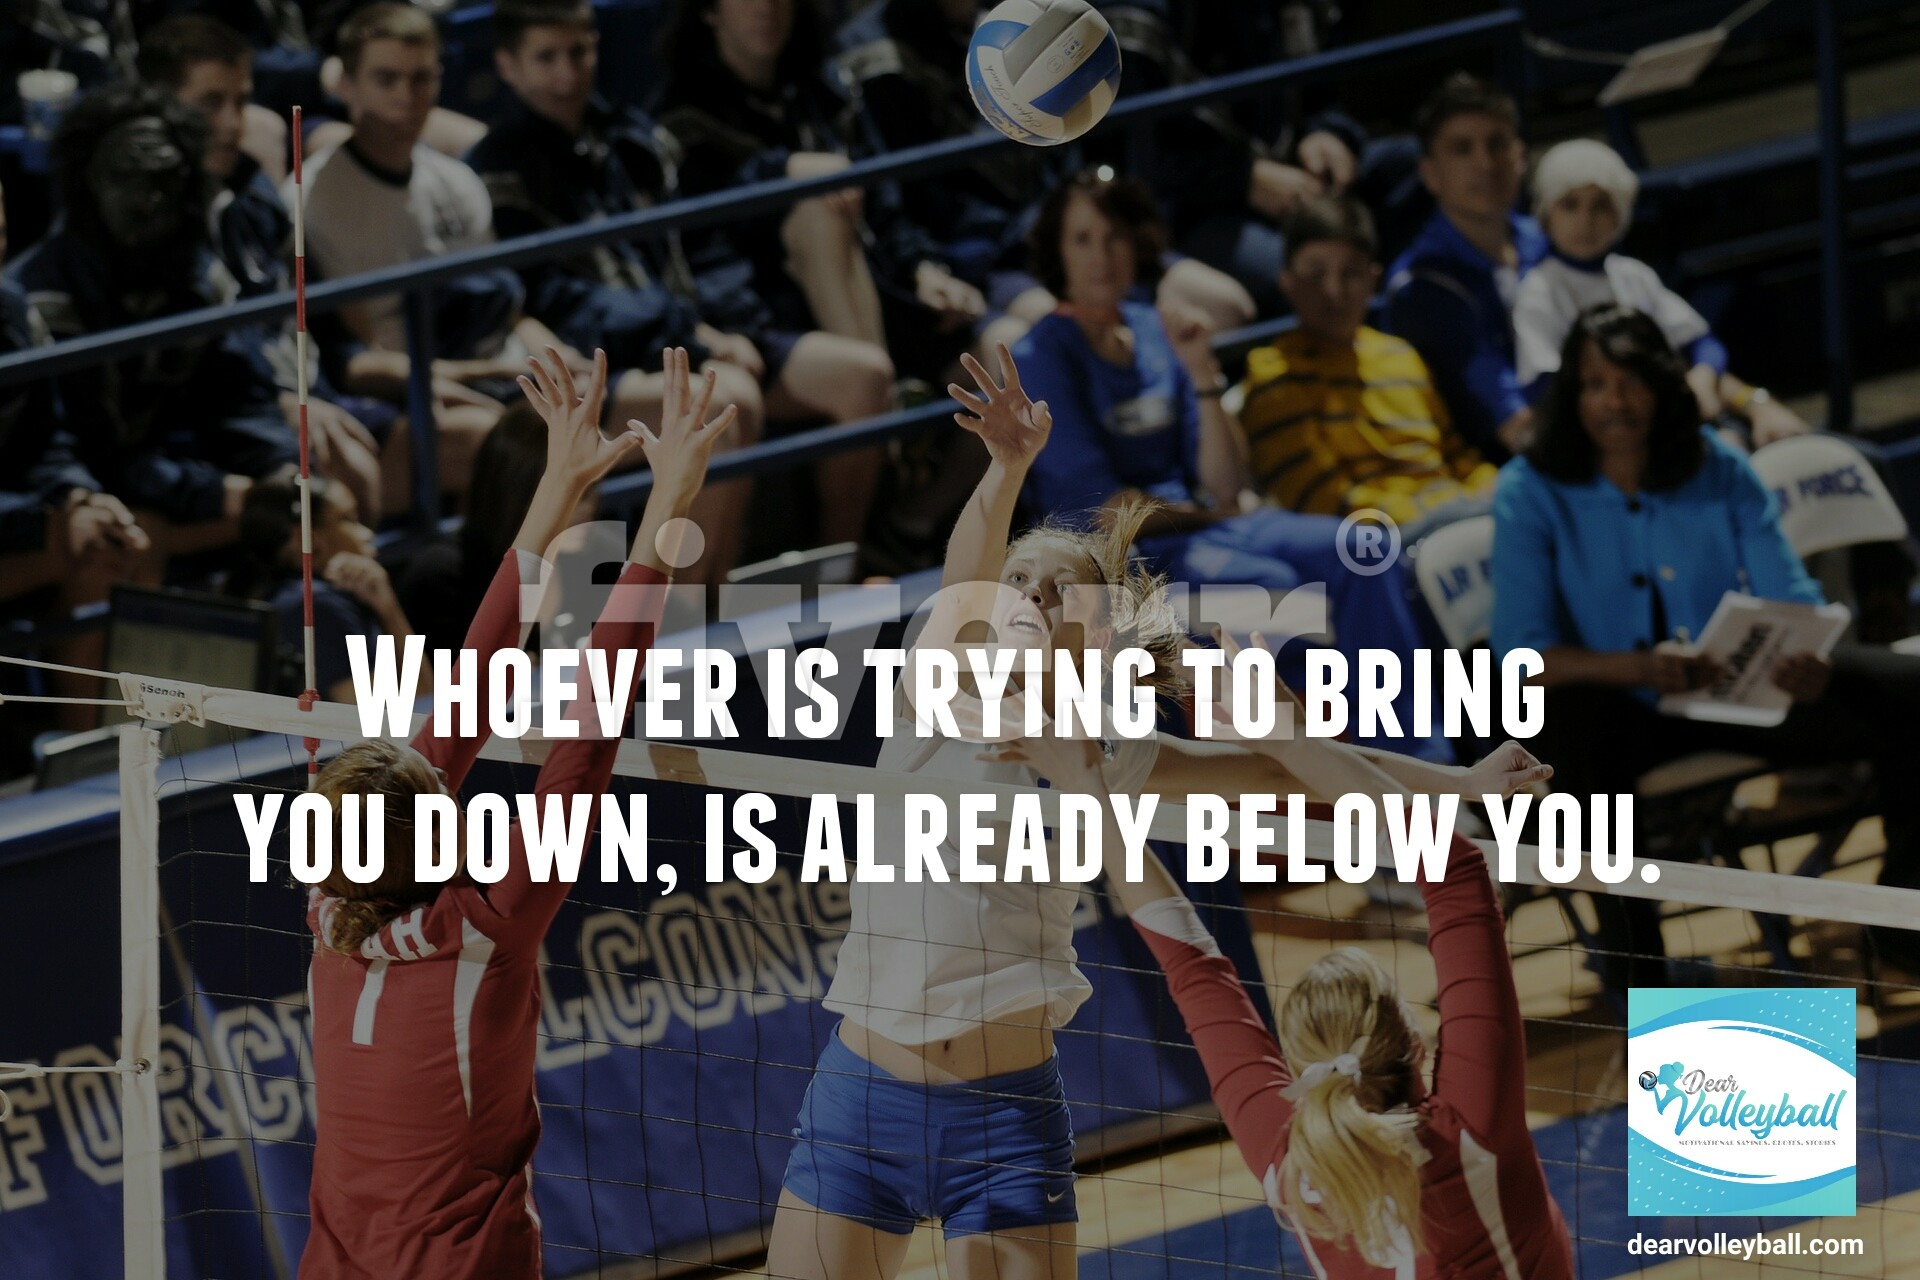 Whoever is trying to bring you down is already below you and 54 short inspirational quotes on DearVolleyball.com